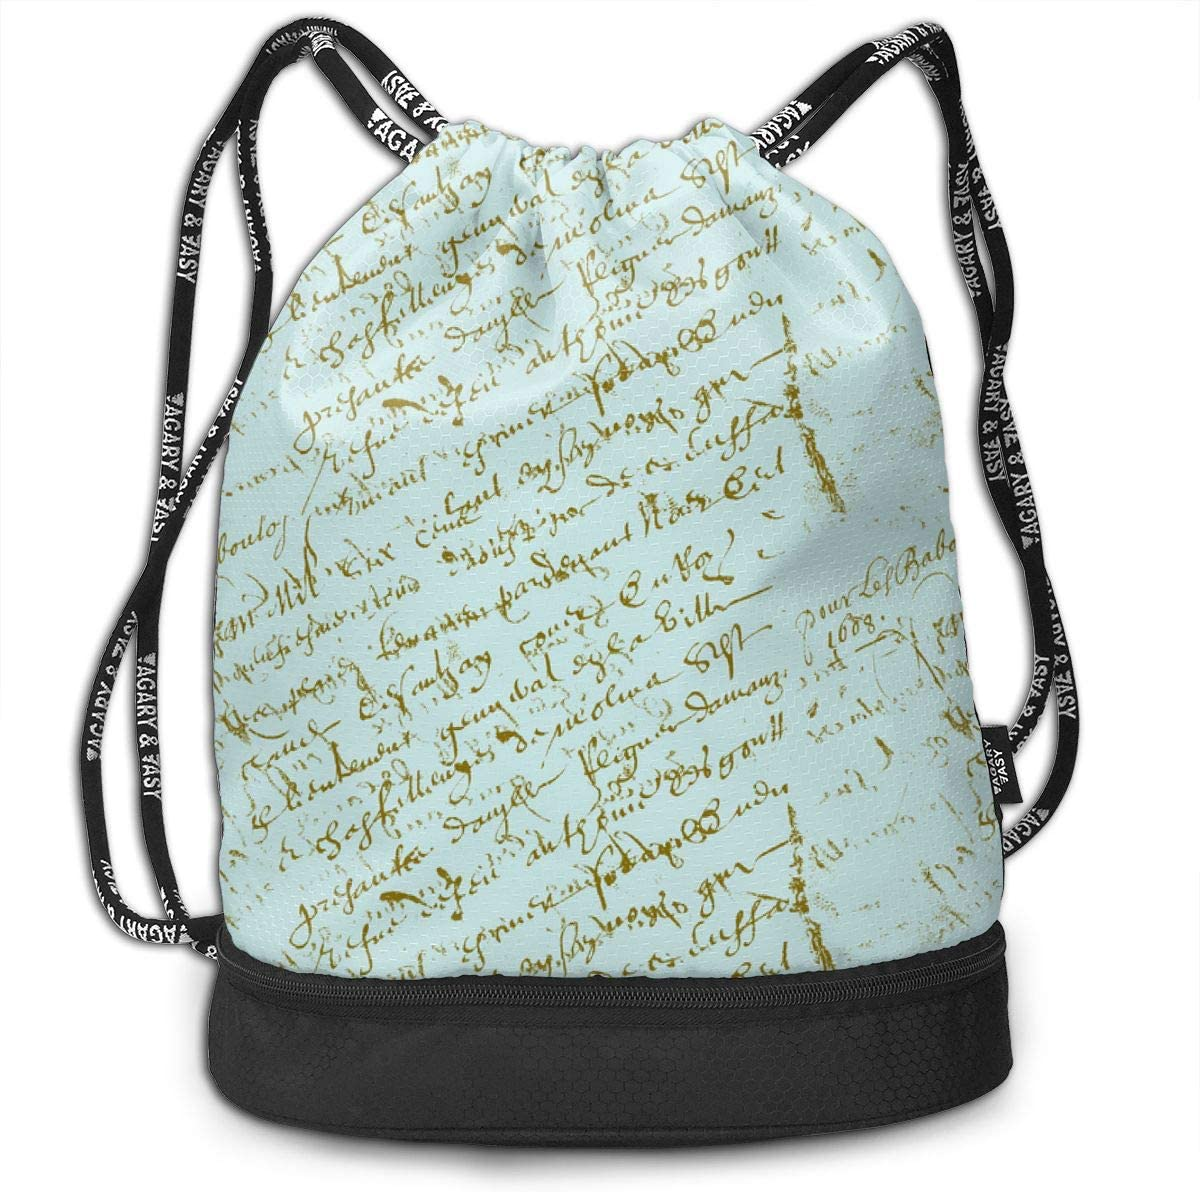 Rfrench Script 1609 Seven Drawstring Backpack Sports Athletic Gym Cinch Sack String Storage Bags for Hiking Travel Beach